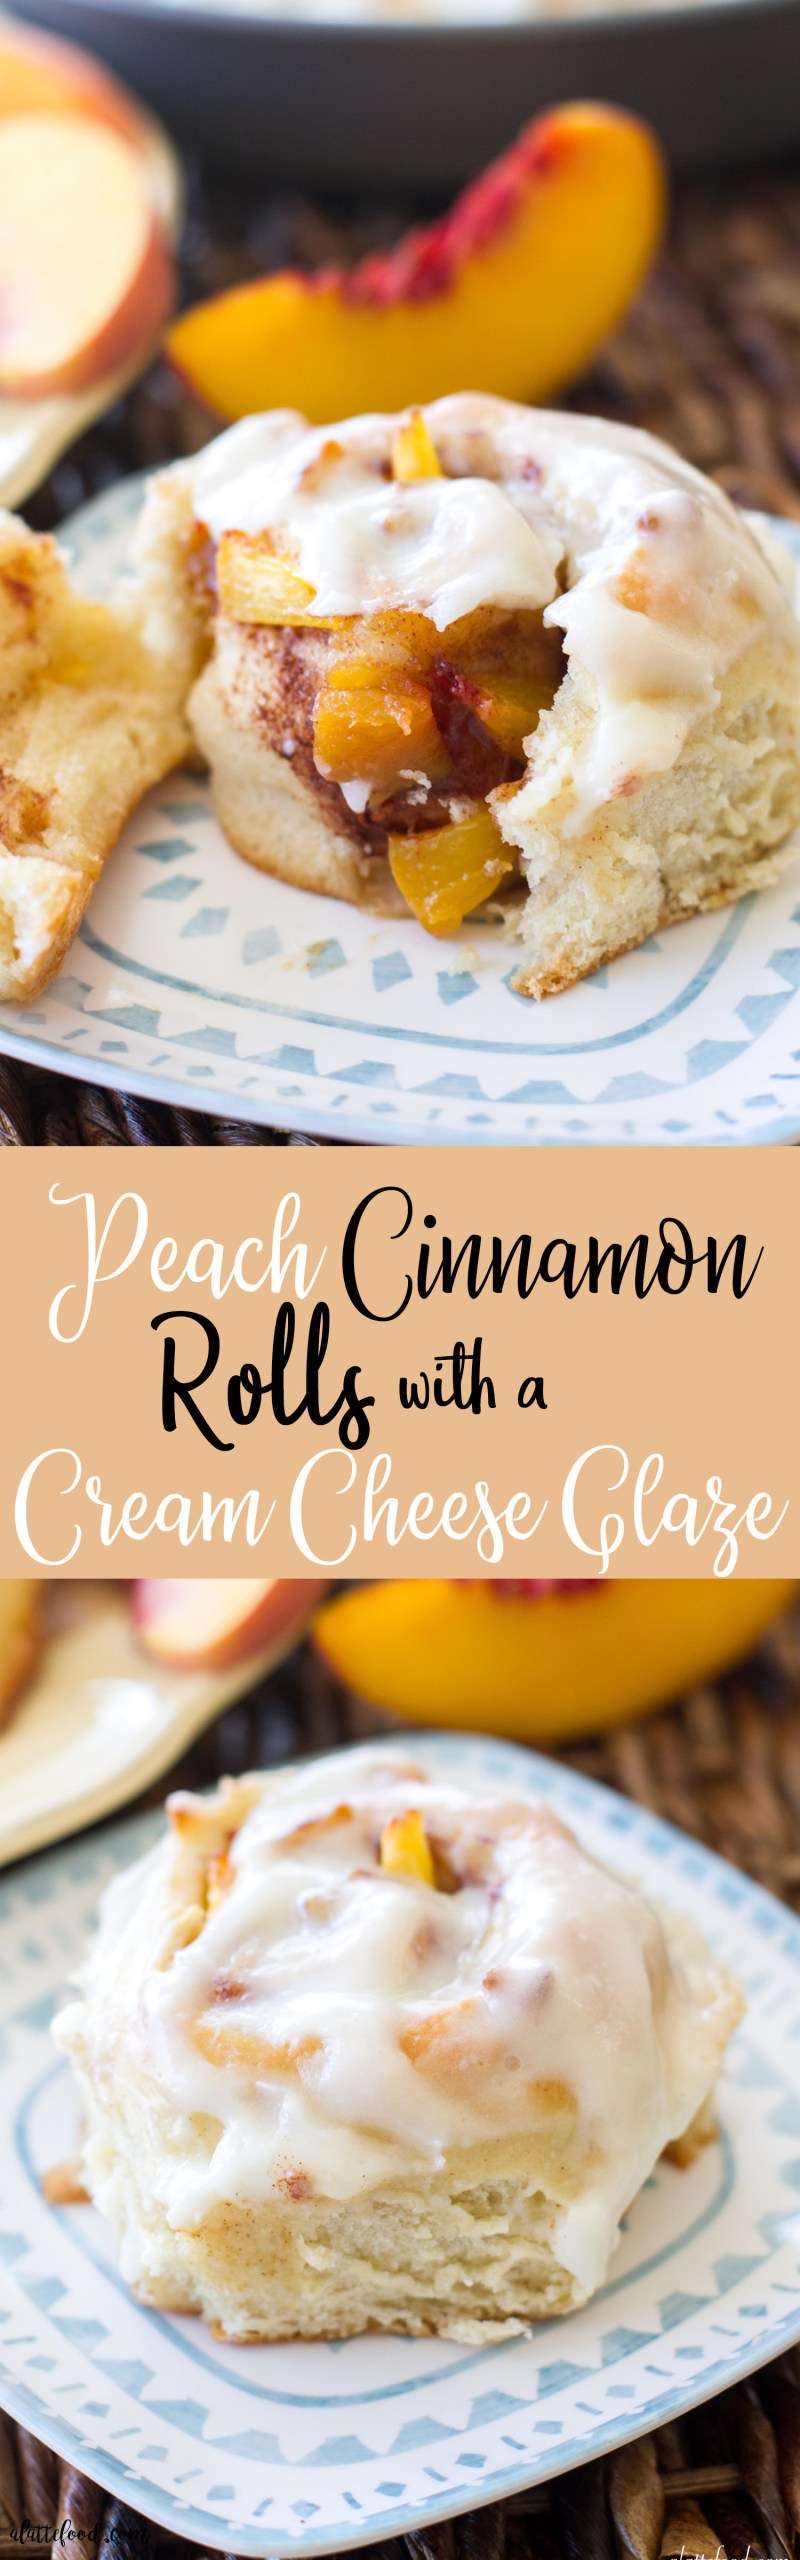 These fluffy, gooey cinnamon rolls are filled with fresh peaches, peach jam, and topped with a rich cream cheese glaze. These peaches and cream cinnamon rolls are love at first bite. Homemade peach cinnamon rolls are the perfect summer breakfast or make ahead breakfast! how to make cinnamon rolls, peach pie, easy cinnamon roll recipe